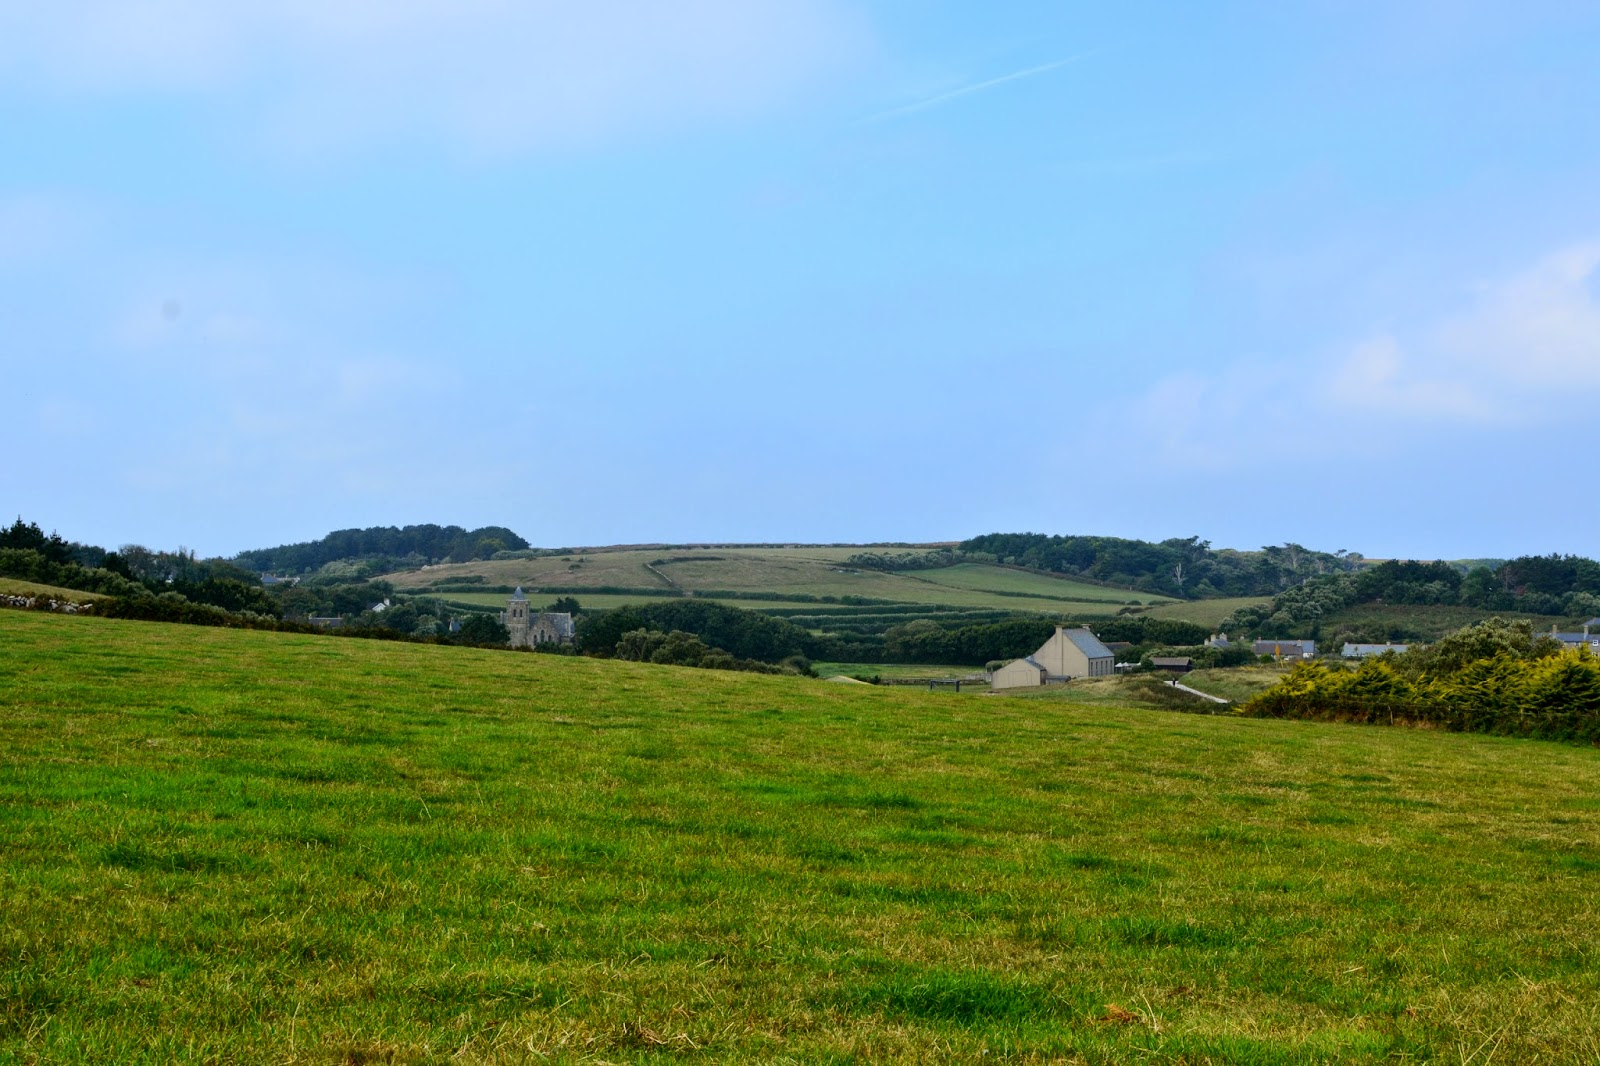 View of Old Grimsby village on Tresco